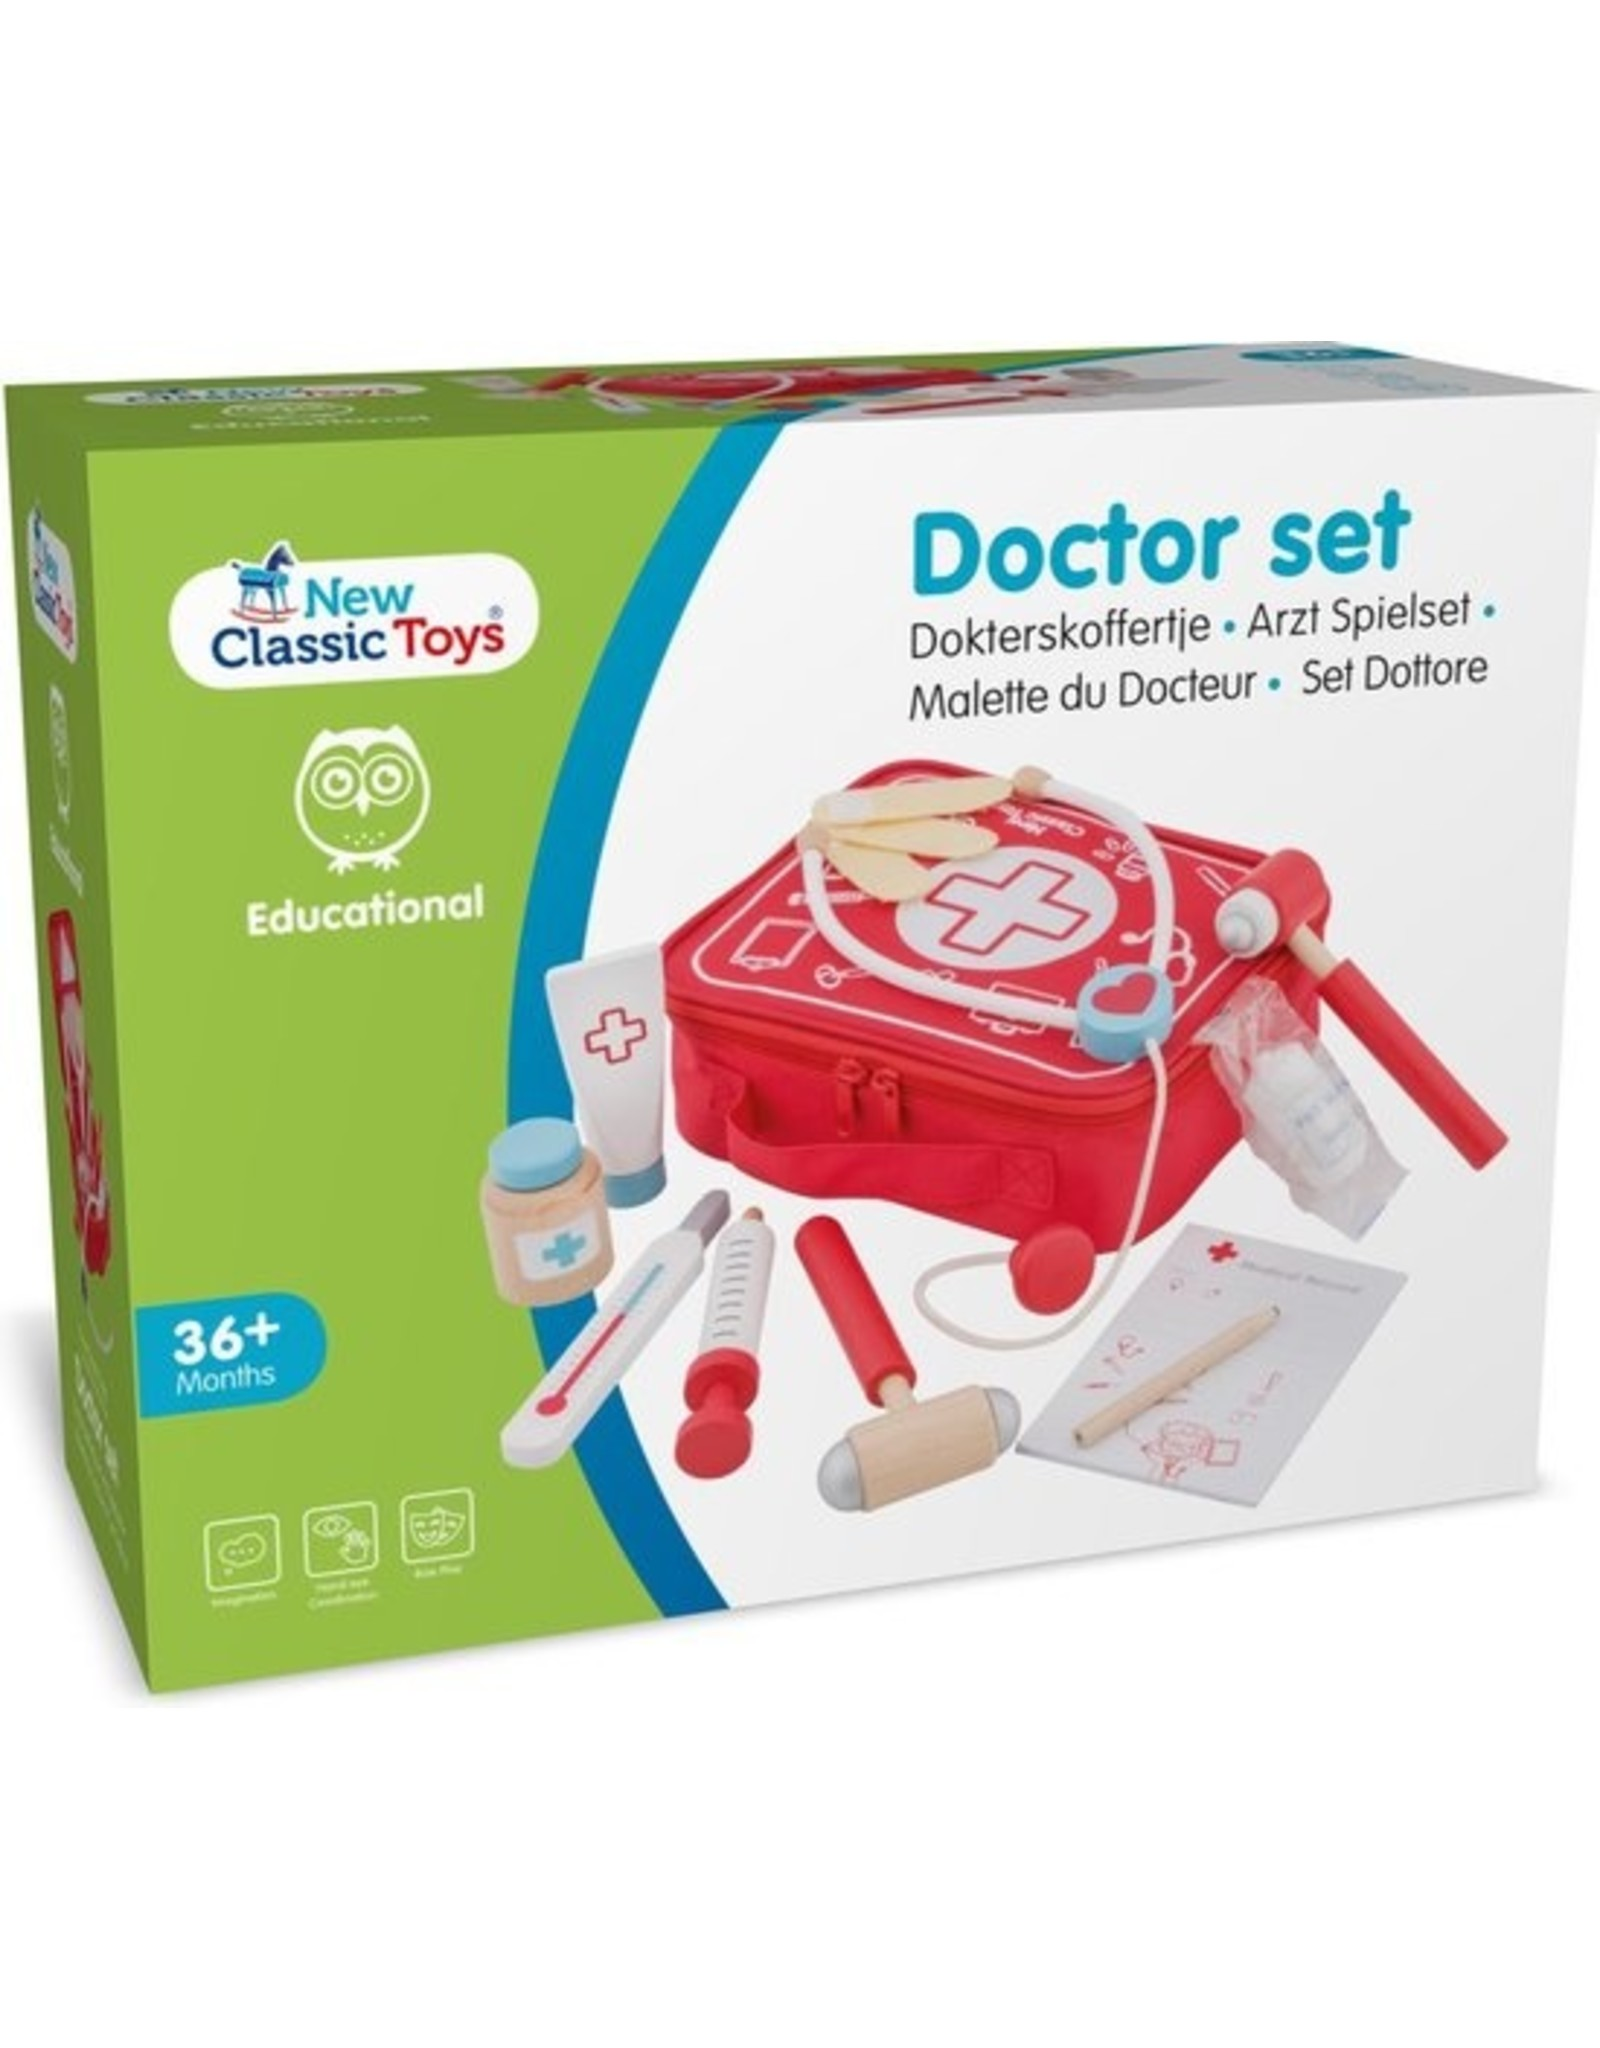 New Classic Toys - Speelgoed Dokterskoffertje